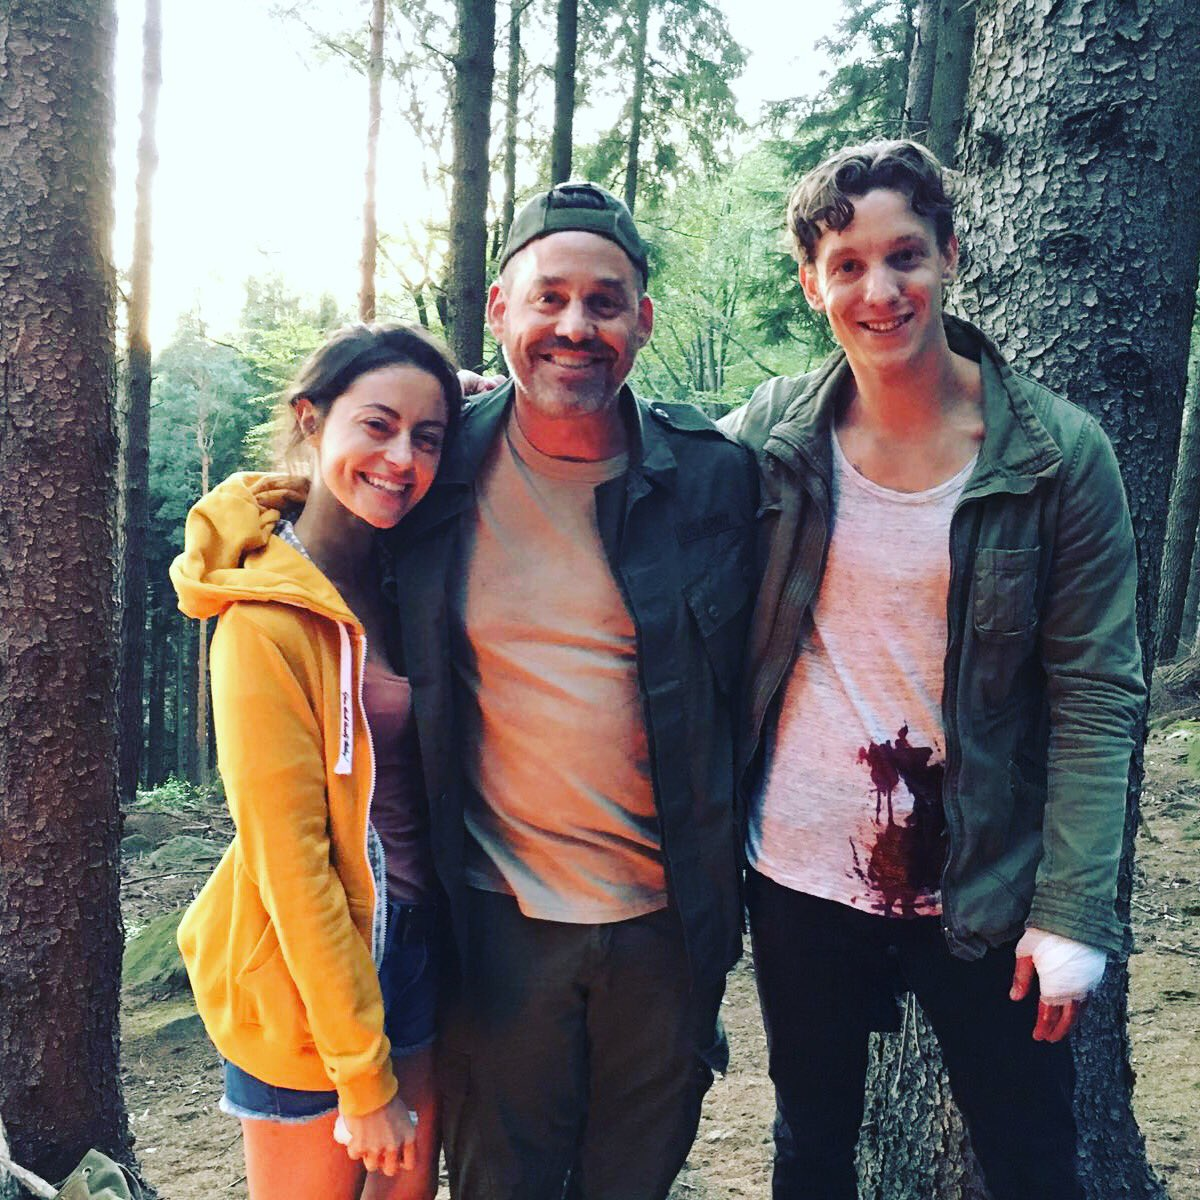 That's a wrap on @redwoodmovie for the brilliant @NicholasBrendon thanks for being apart of this buddy! #21pilots https://t.co/VXCgVVhmZk